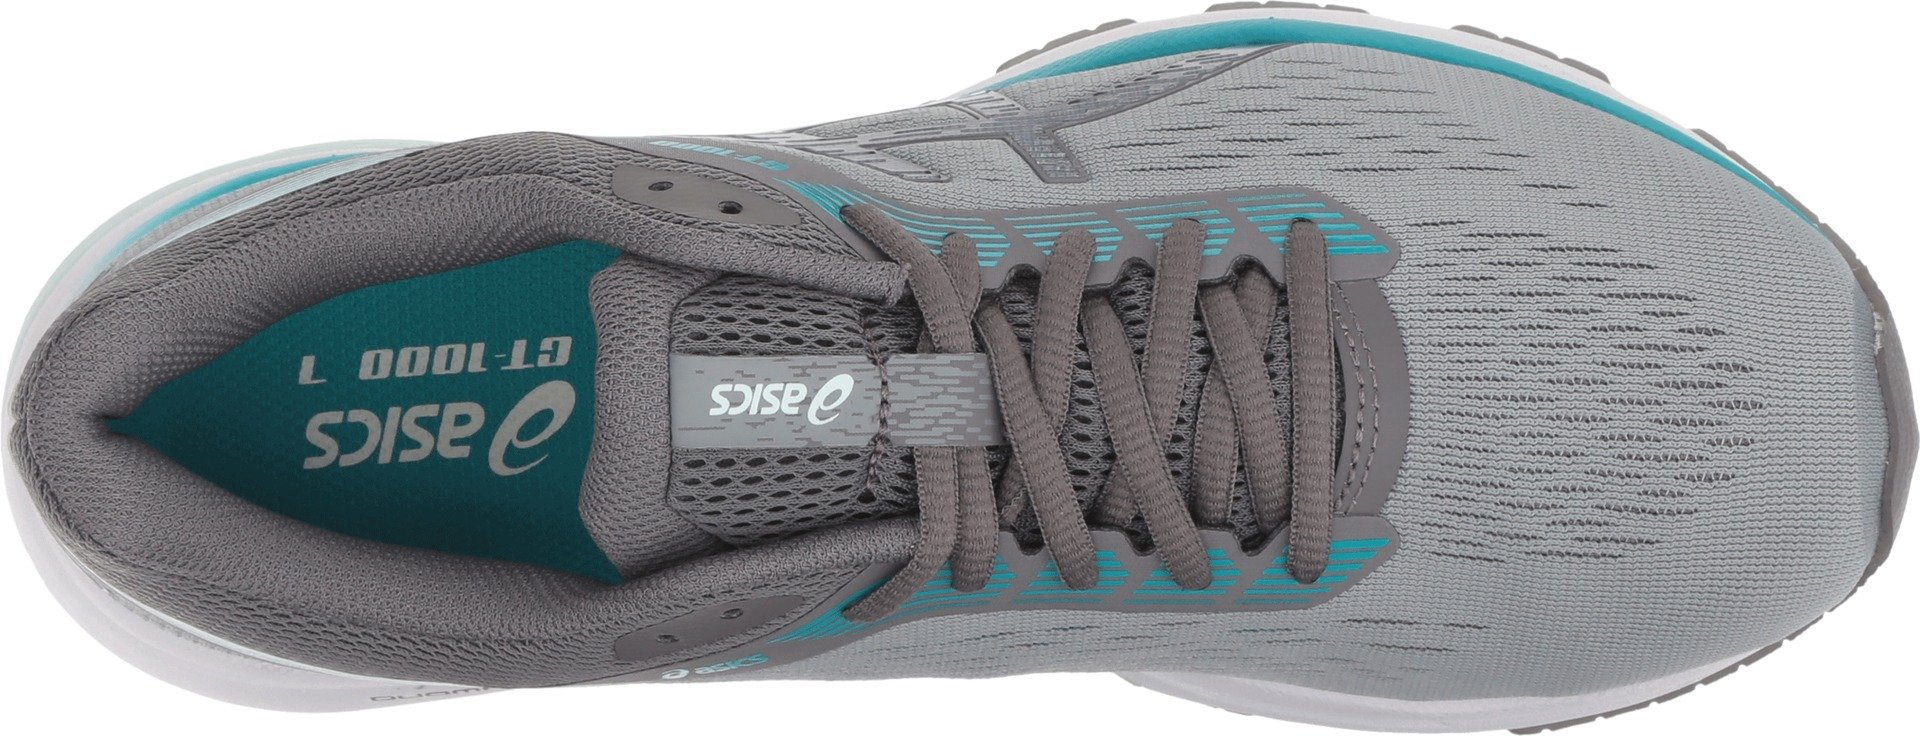 ASICS Women's GT-1000 7 Stone Grey/Carbon 5 B US by ASICS (Image #2)